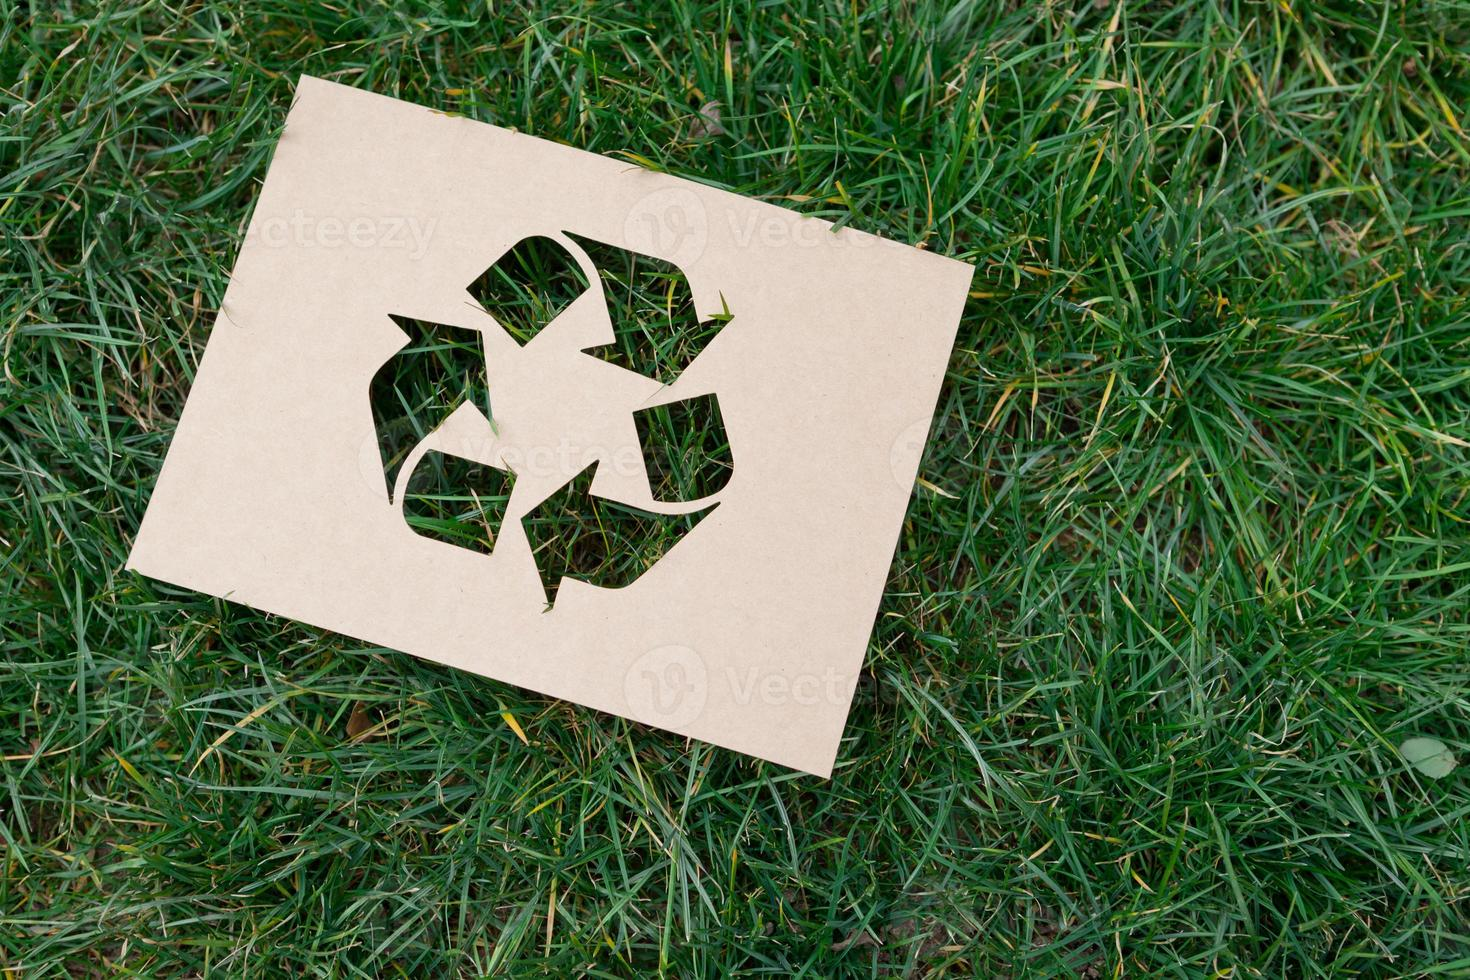 Recycle photo